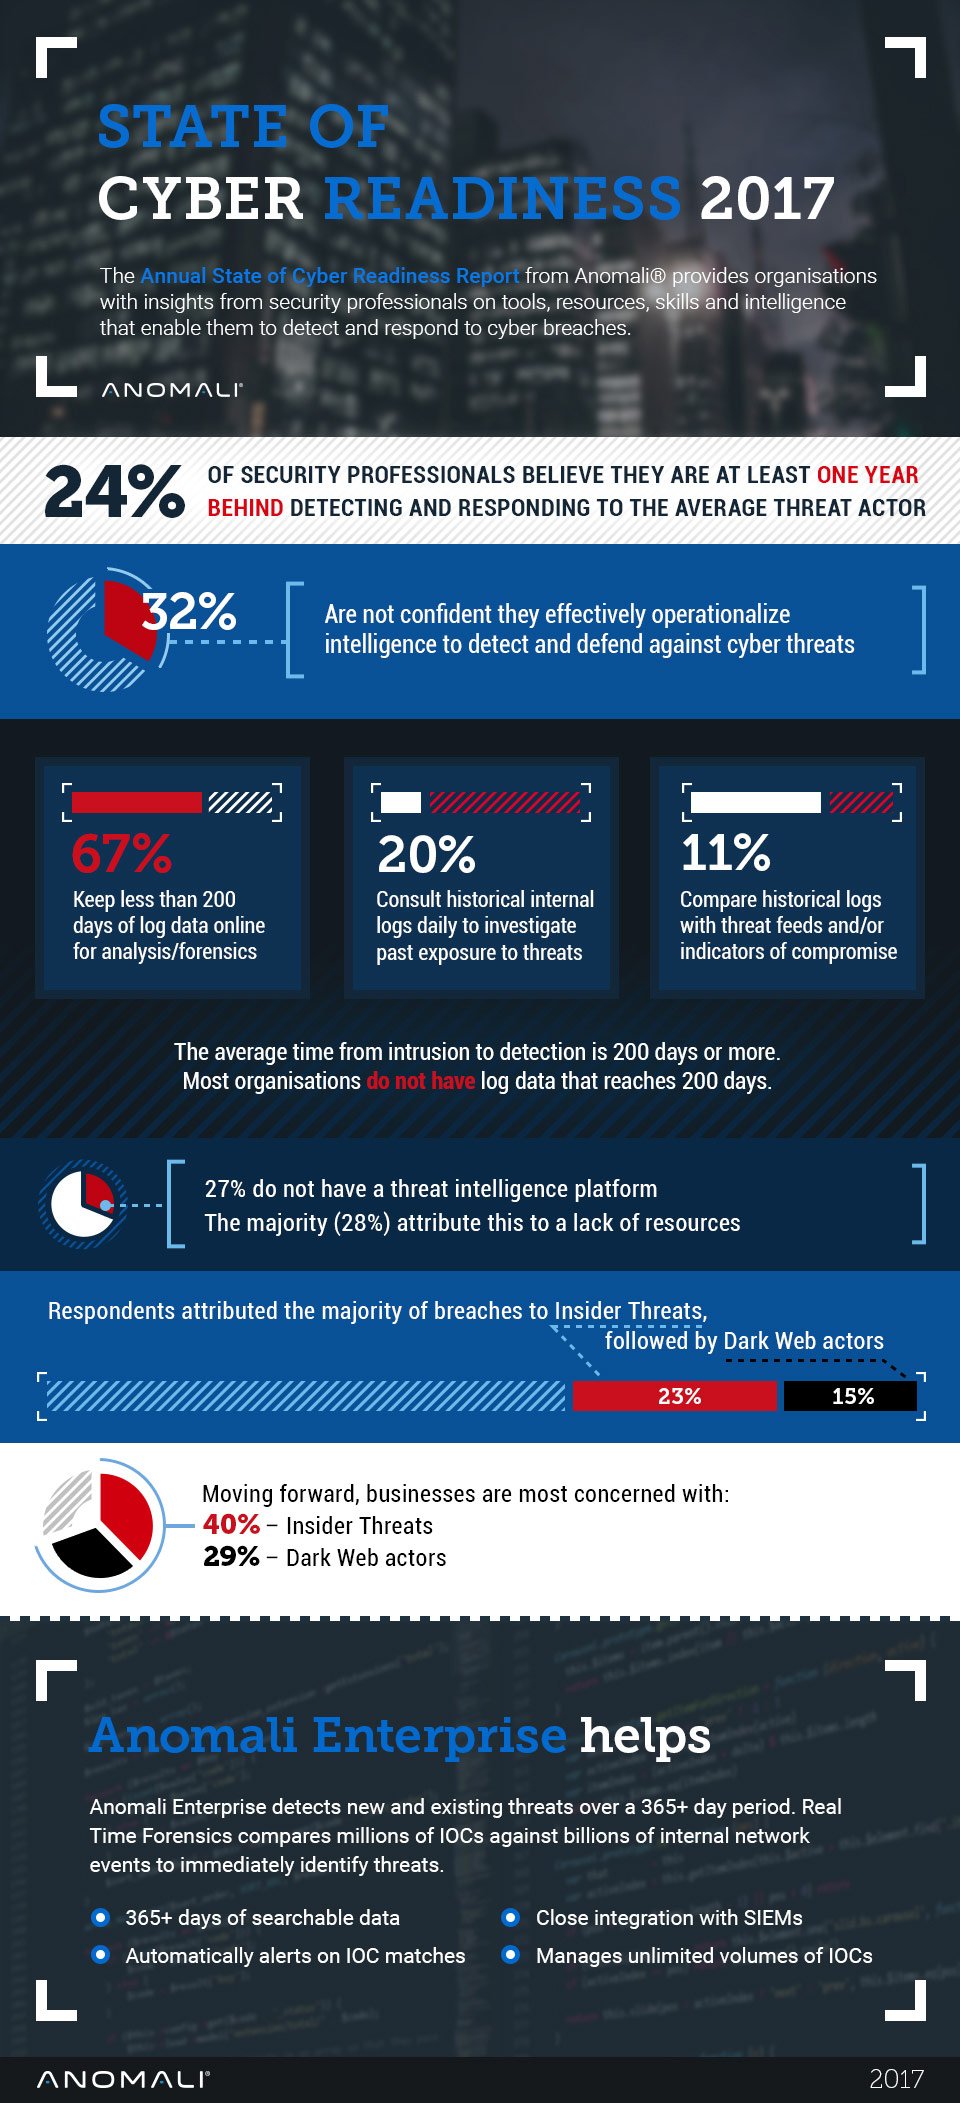 State of Cyber Readiness 2017